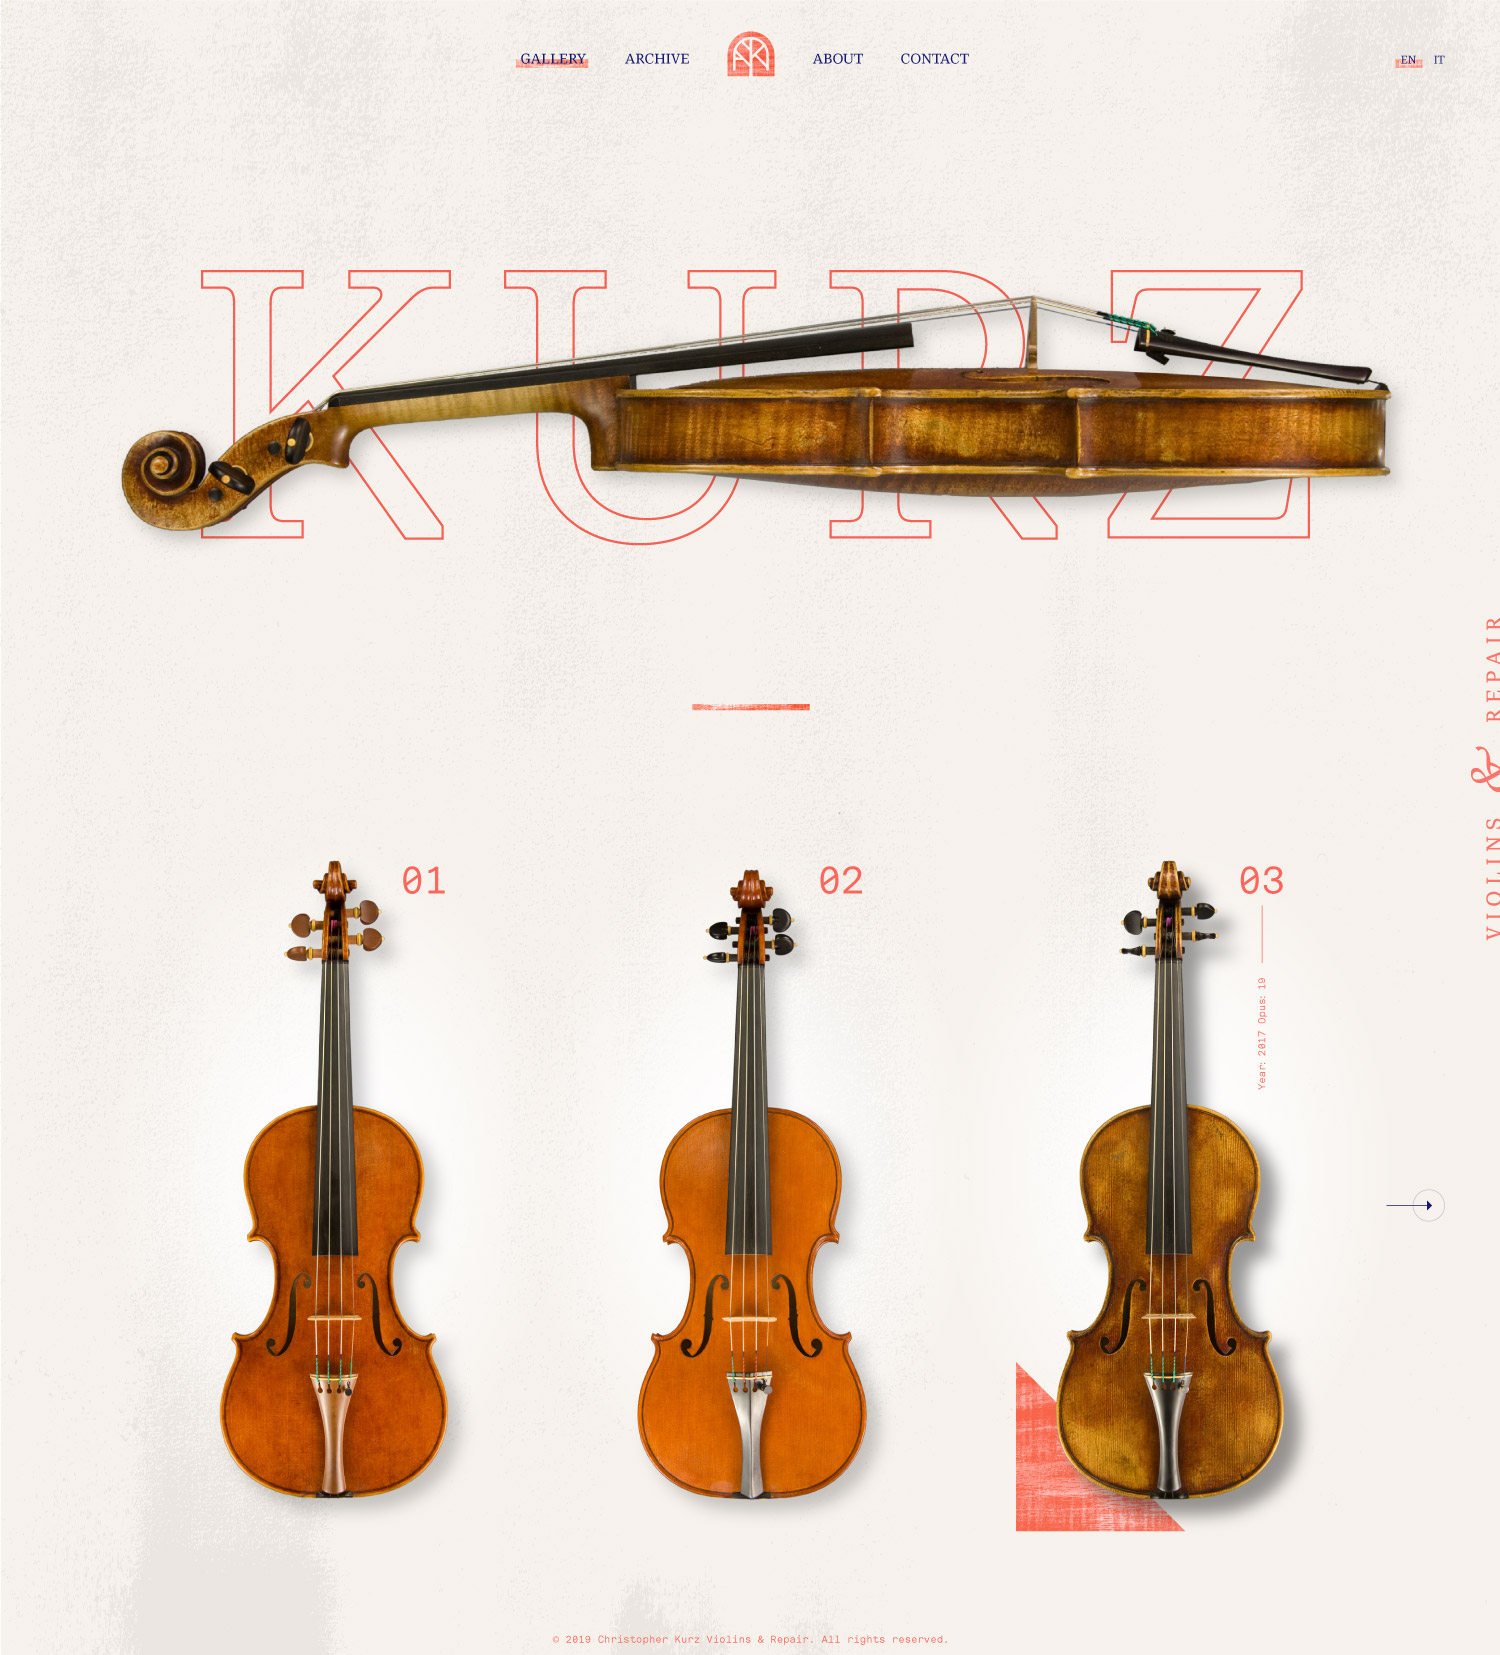 0219_CK_Violins_Website_Concept-02